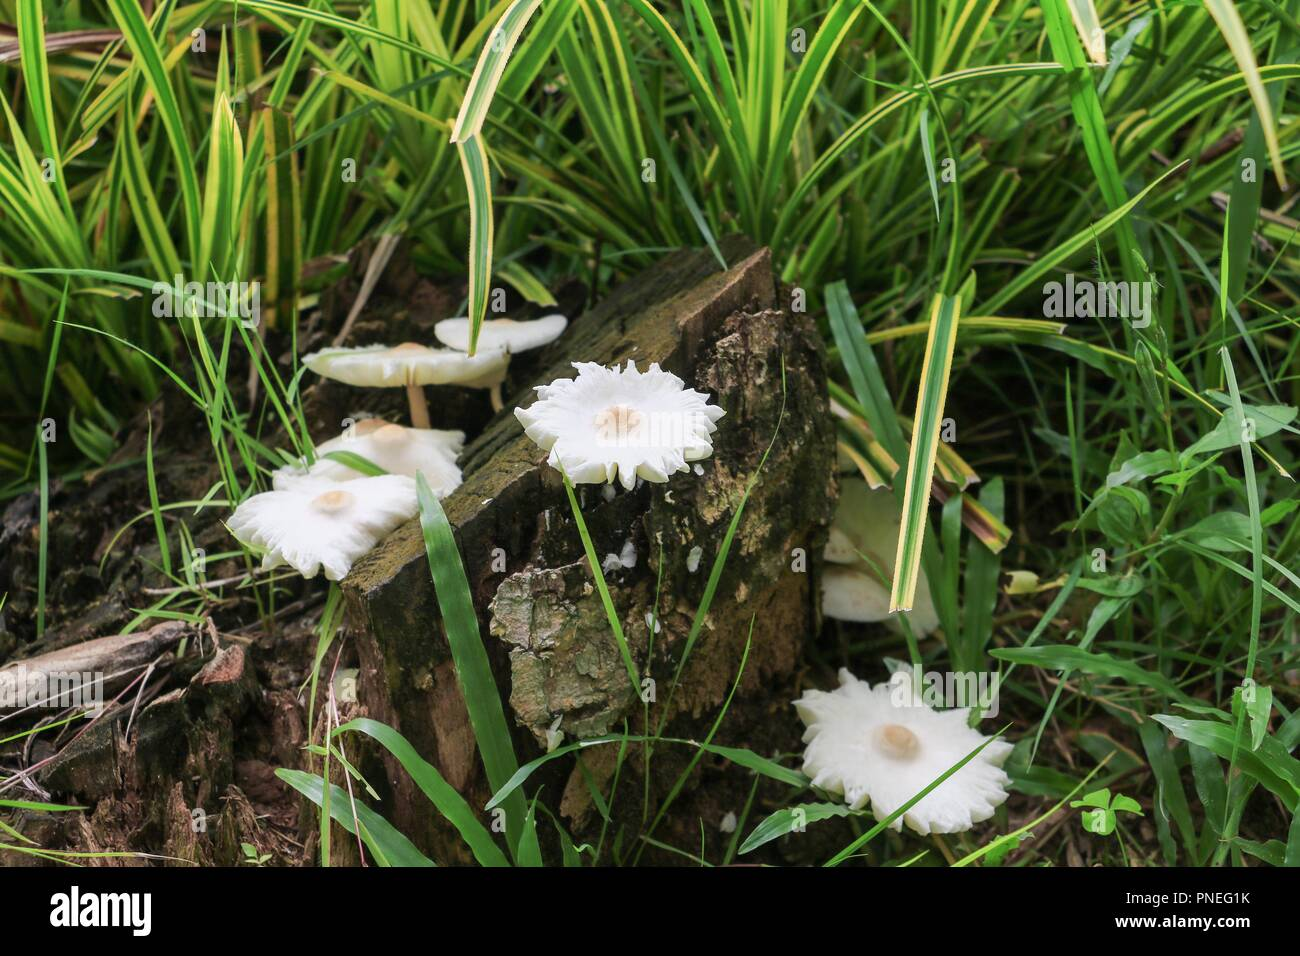 mushroom in nature beautiful on the floor grass,  select focus with shallow depth of field. Stock Photo